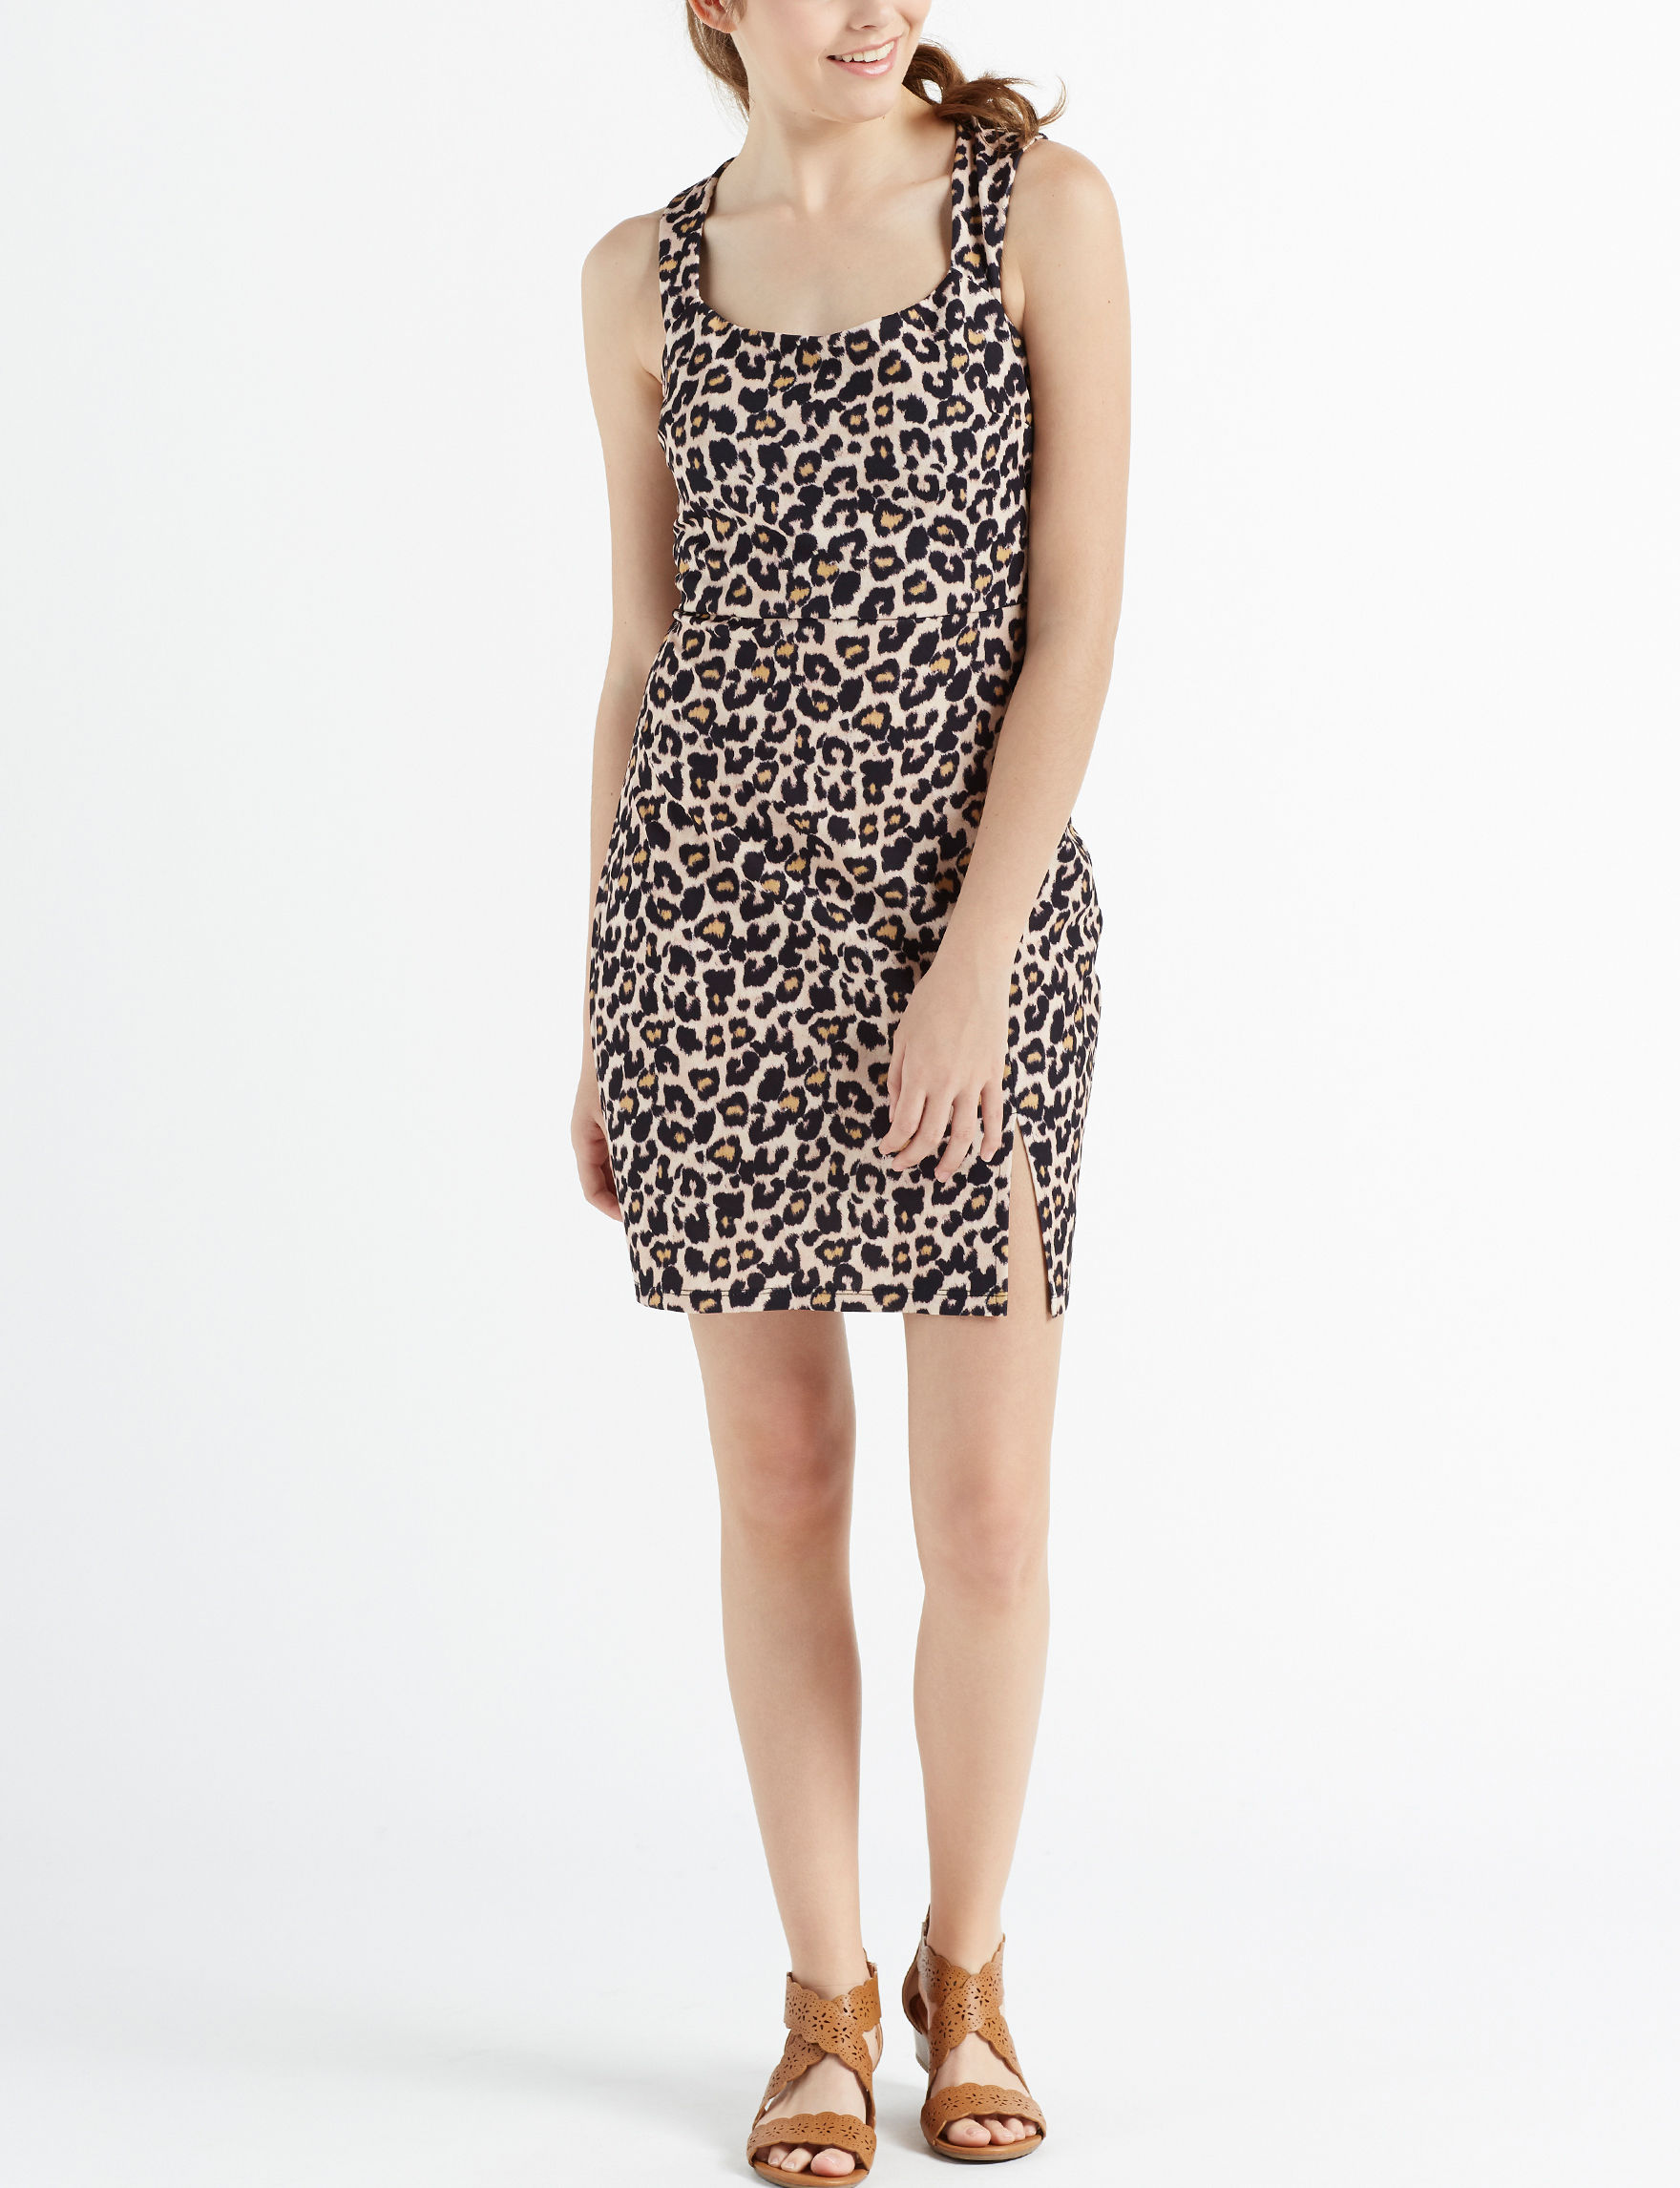 Sequin Hearts Leopard Cocktail & Party Bodycon Dresses